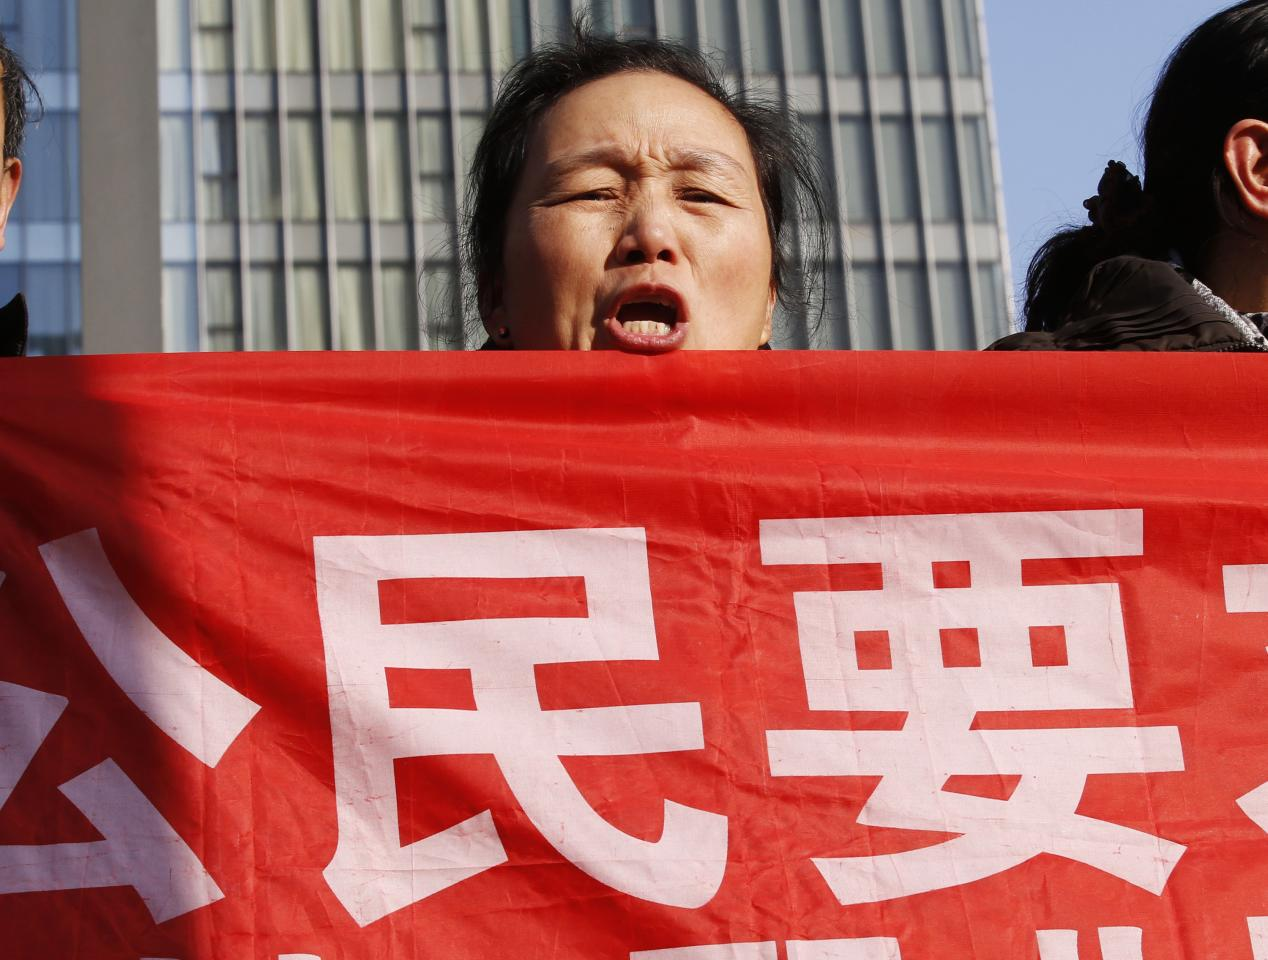 """Supporters of Xu Zhiyong, one of China's most prominent rights advocates, shout slogans near a court where Xu's trial is being held, in Beijing January 22, 2014. Xu, 40, stands trial on Wednesday on a charge of """"gathering a crowd to disturb public order"""" punishable by up to five years in prison. His case will almost certainly spark fresh criticism from Western governments over Beijing's crackdown on dissent. The slogan on the placard is a part of slogan that reads: """"Citizens request officials to publicly disclose assets."""" REUTERS/Kim Kyung-Hoon (CHINA - Tags: POLITICS CIVIL UNREST)"""